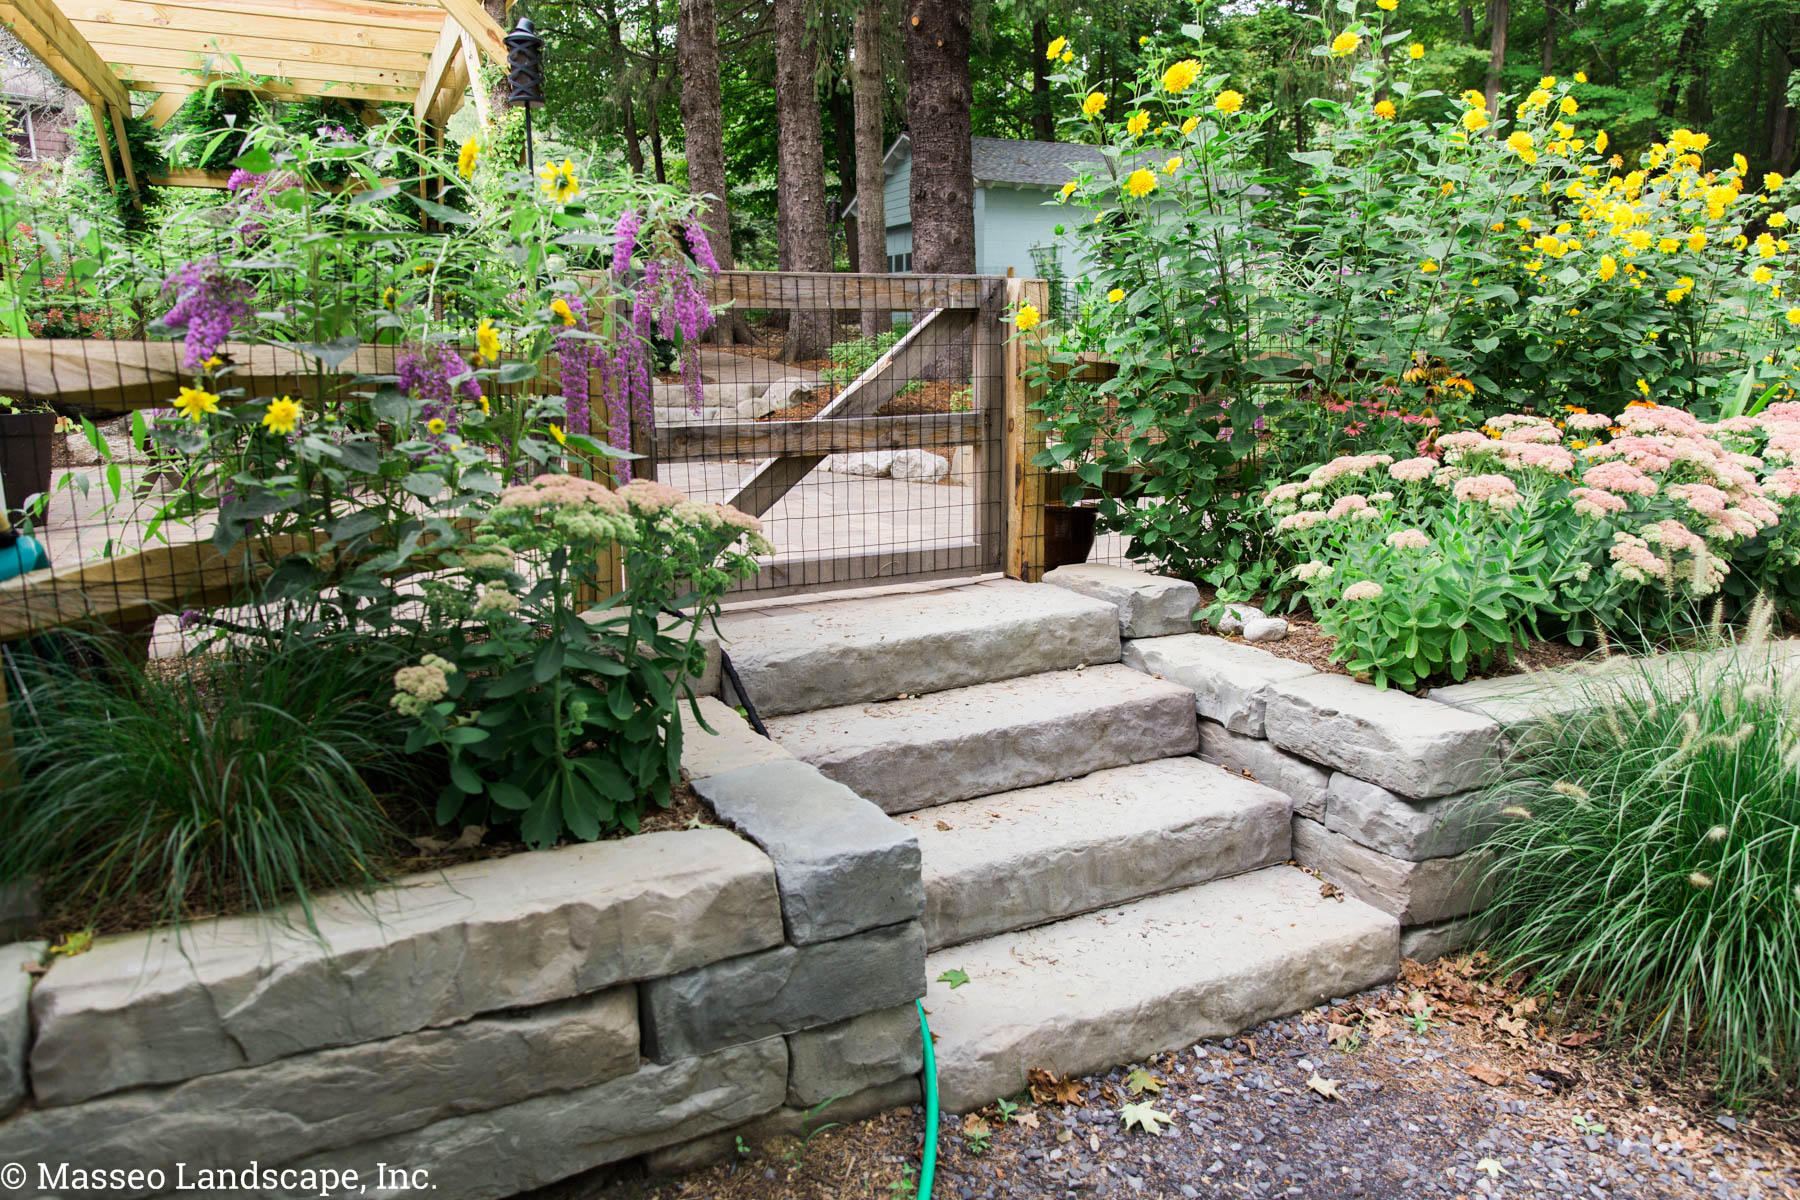 Rosetta Kodah retaining walls and steps in an entryway in New Paltz, NY by Masseo Landscape, Inc.